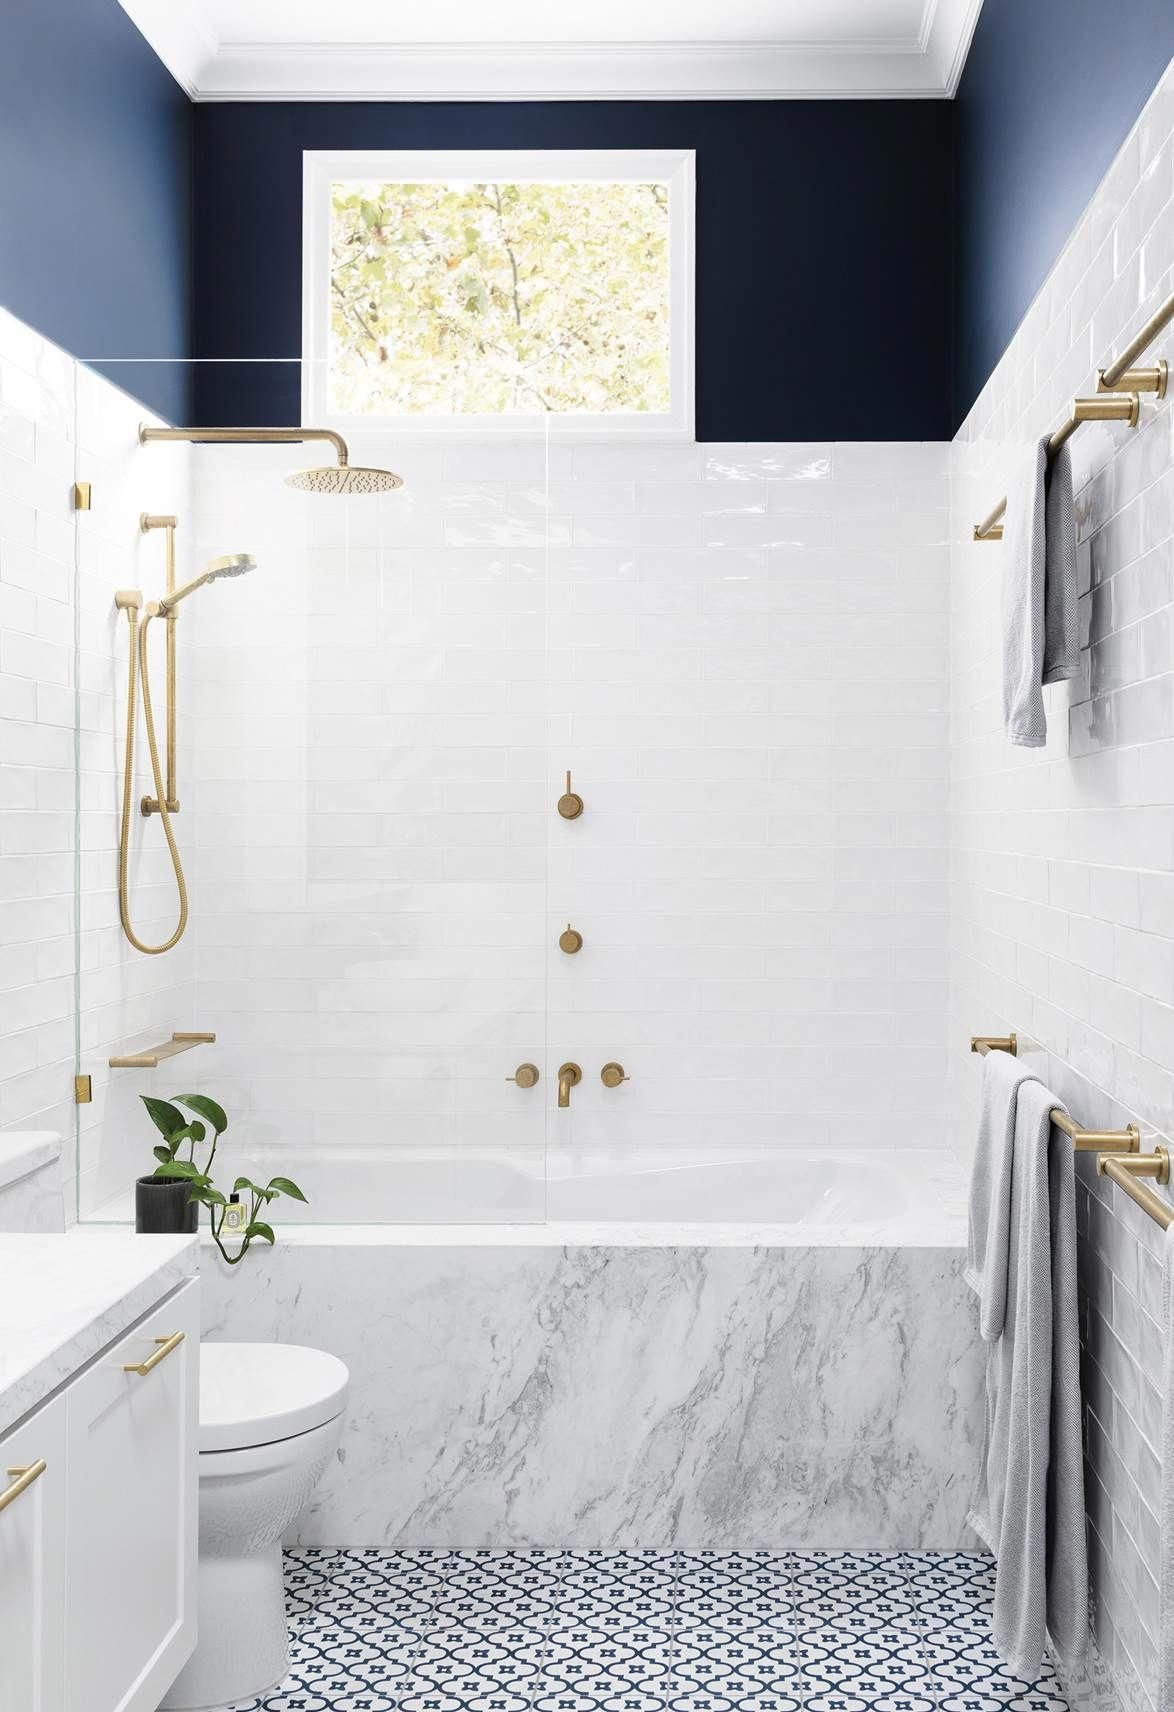 The Shower Drapes Can Match Your Restroom S Theme For Included Beauty Pick A Shower Curt With Images Small Half Bathrooms Bathroom Design Small Trendy Bathroom